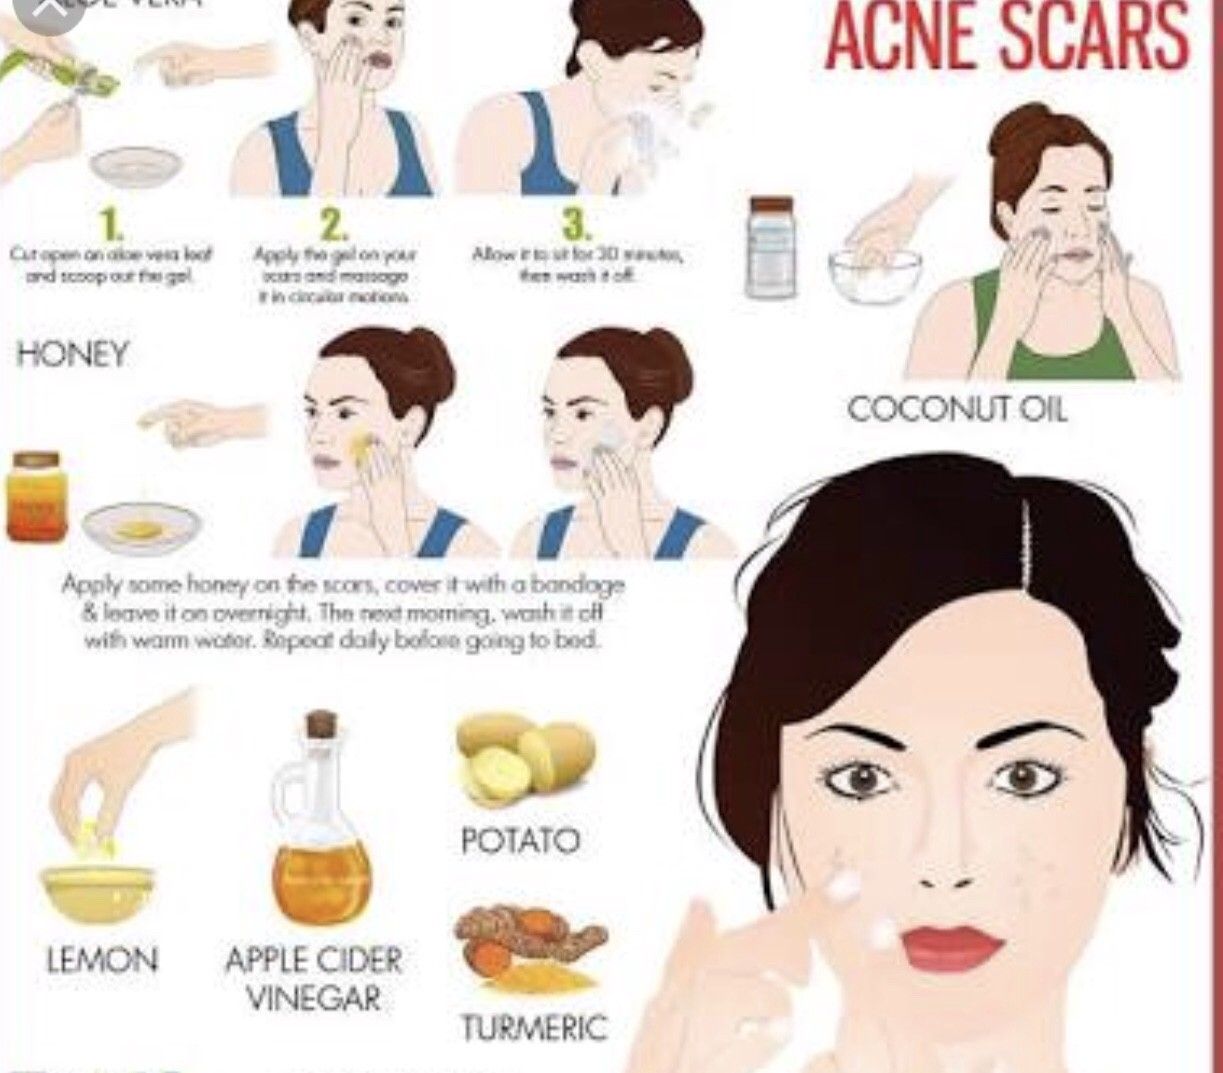 Discussion on this topic: How to remove acne scars with apple , how-to-remove-acne-scars-with-apple/